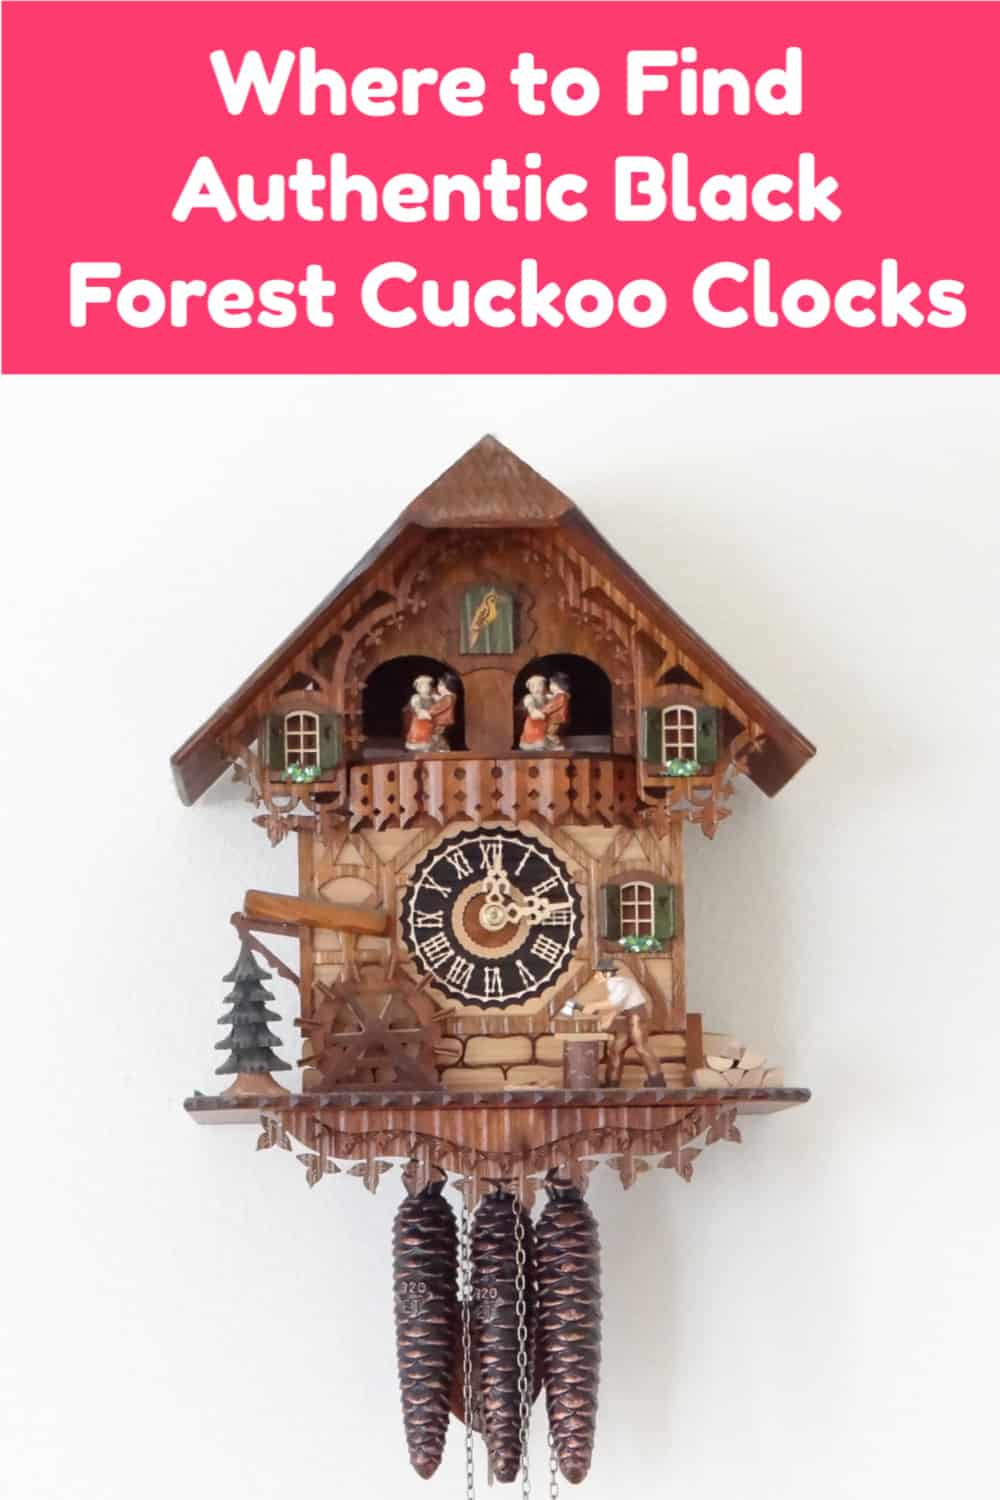 Black Forest Cuckoo Clock p Where to Find Authentic Black Forest Cuckoo Clocks